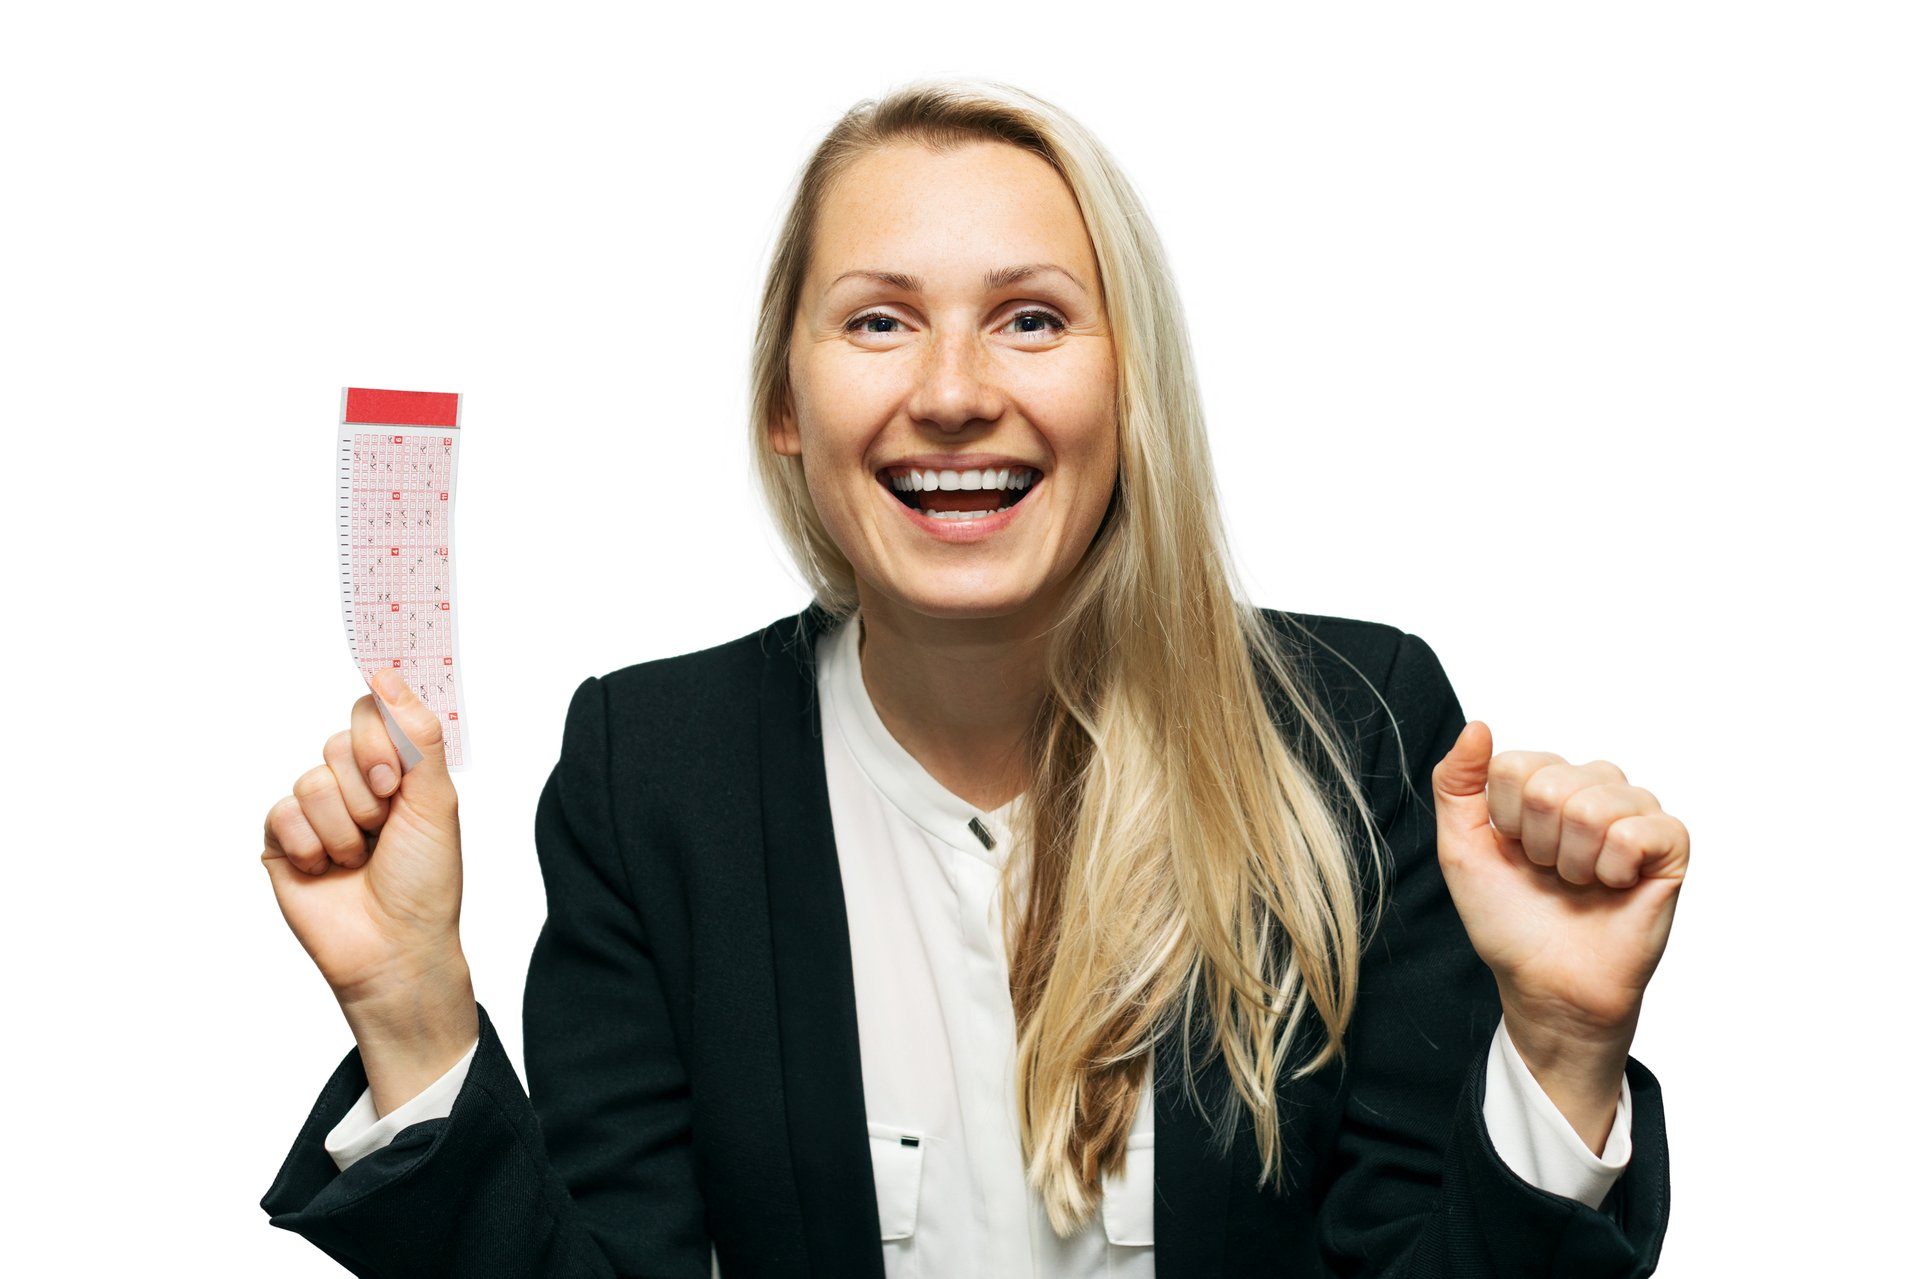 Woman with Lottery Ticket